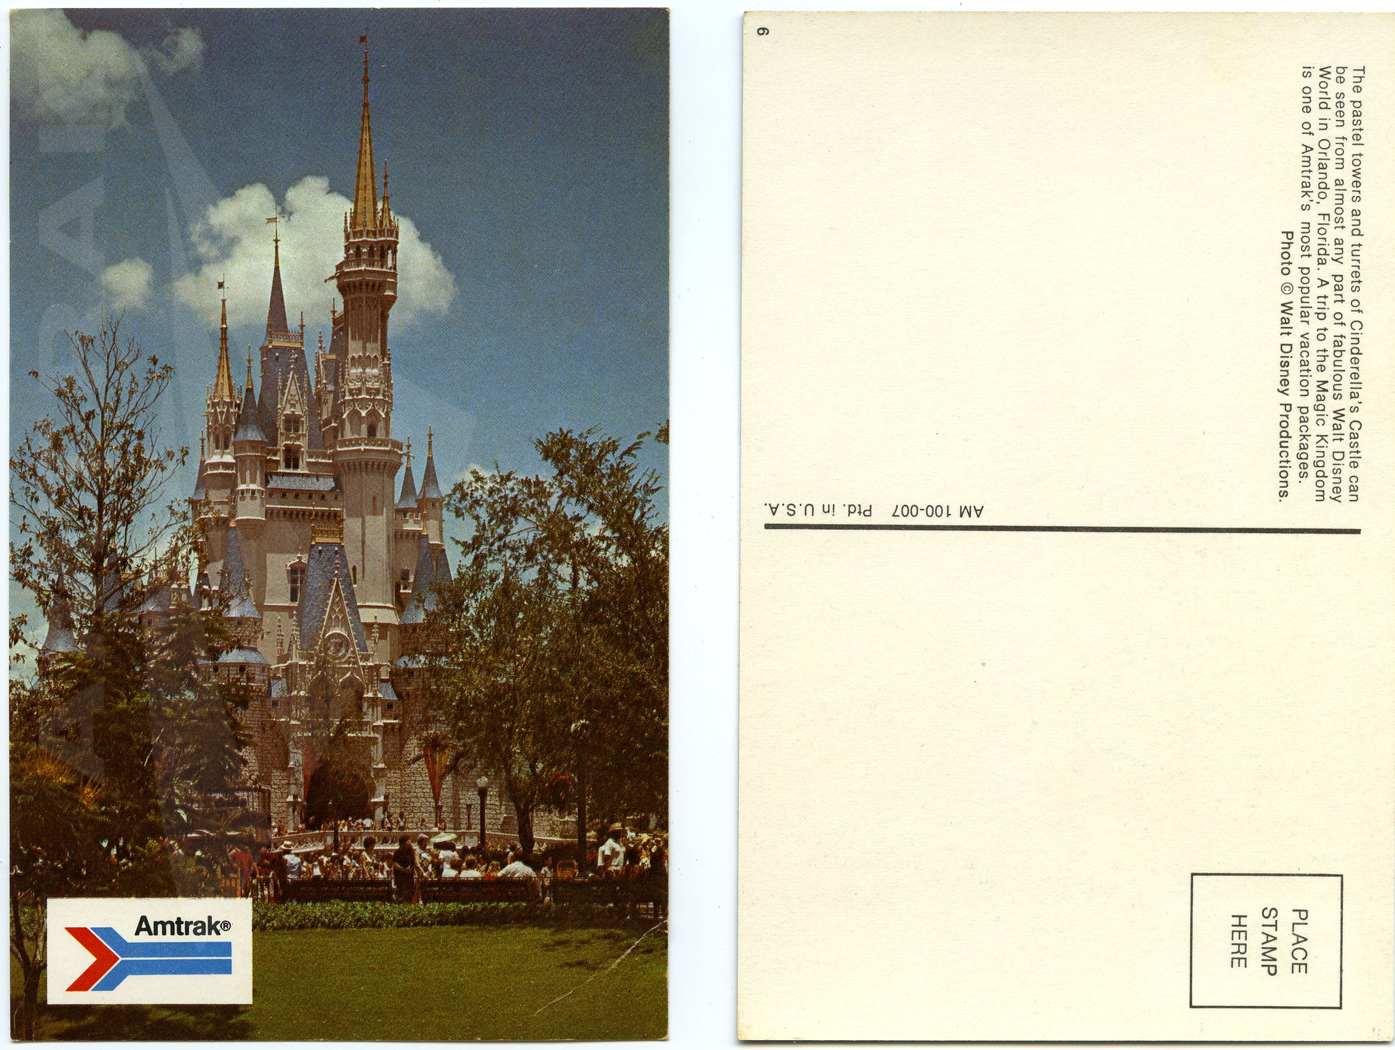 Disney World Postcard 1970s Amtrak History Of America S Railroad